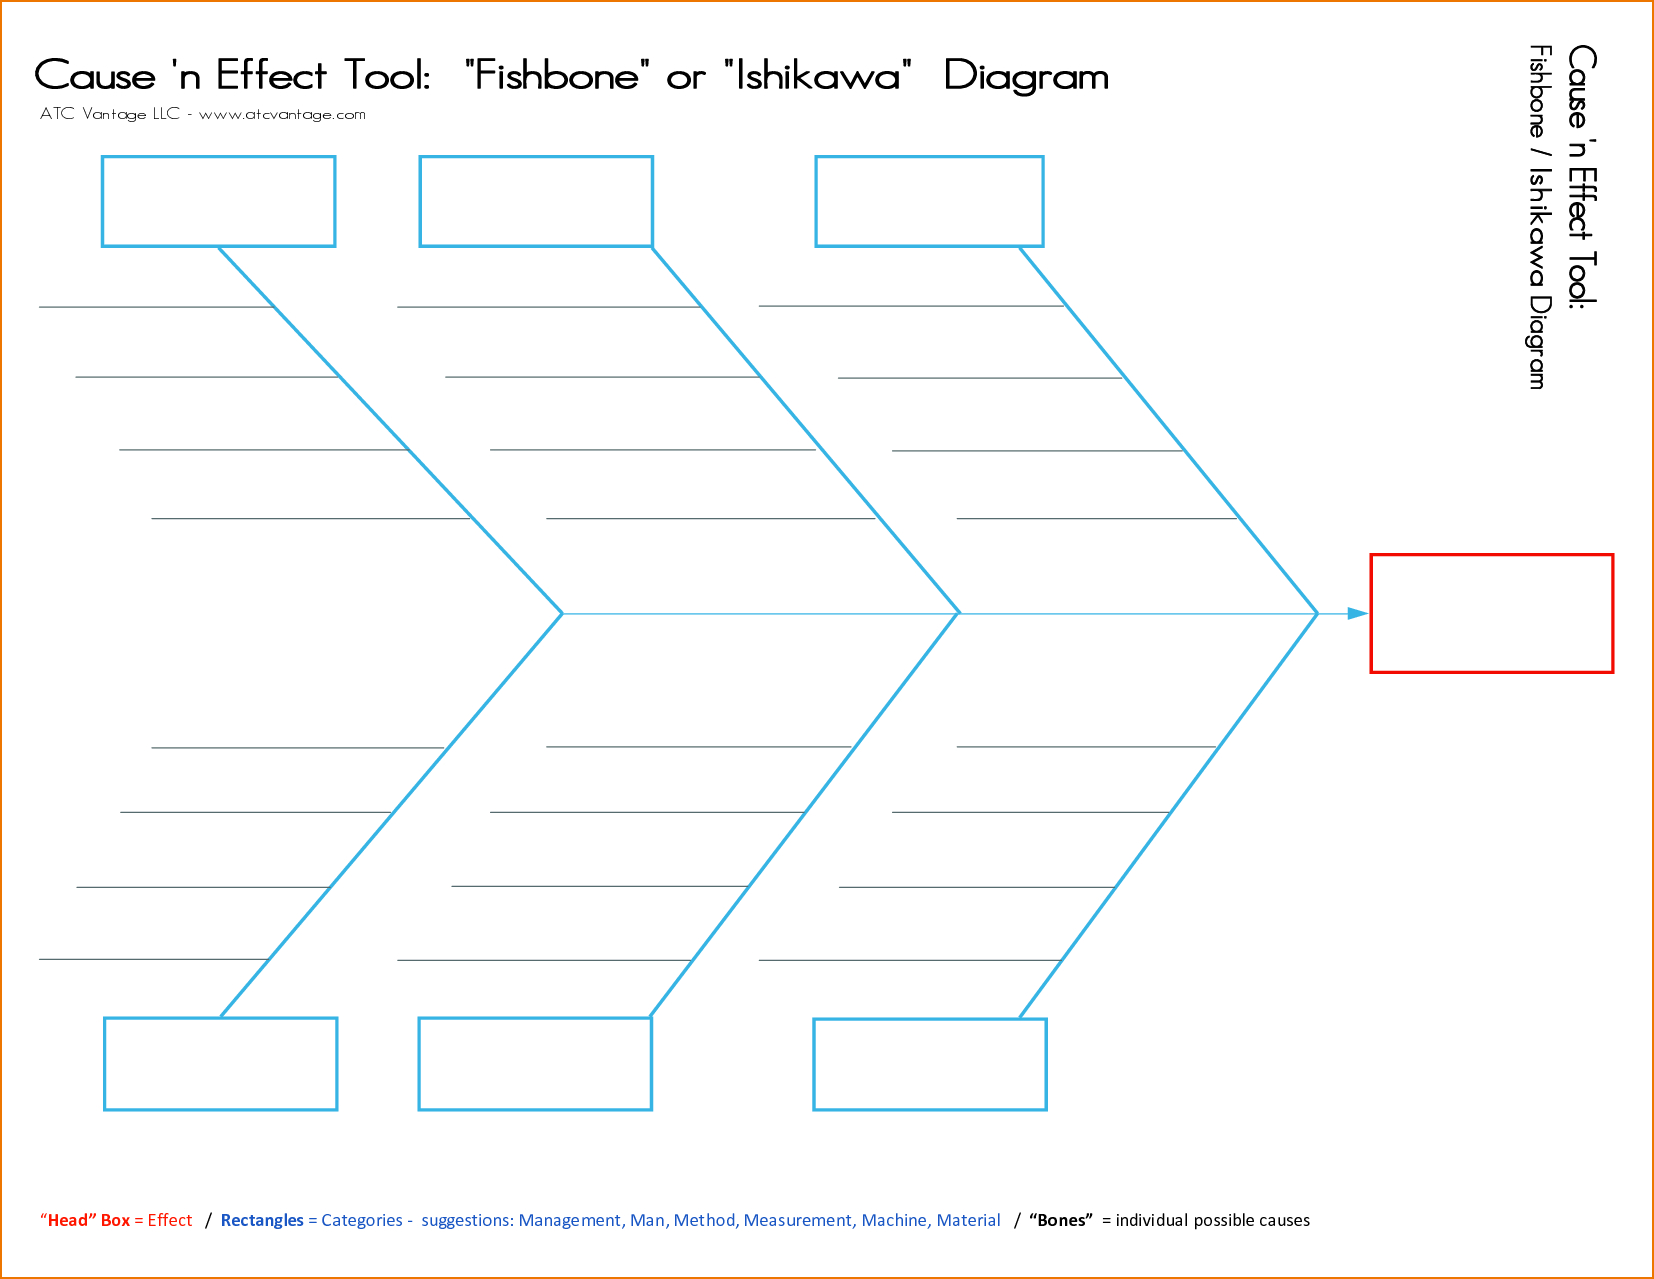 Cause And Effect Diagram 003 Template Ideas Cause And Effect Diagram Blank Shocking Fishbone